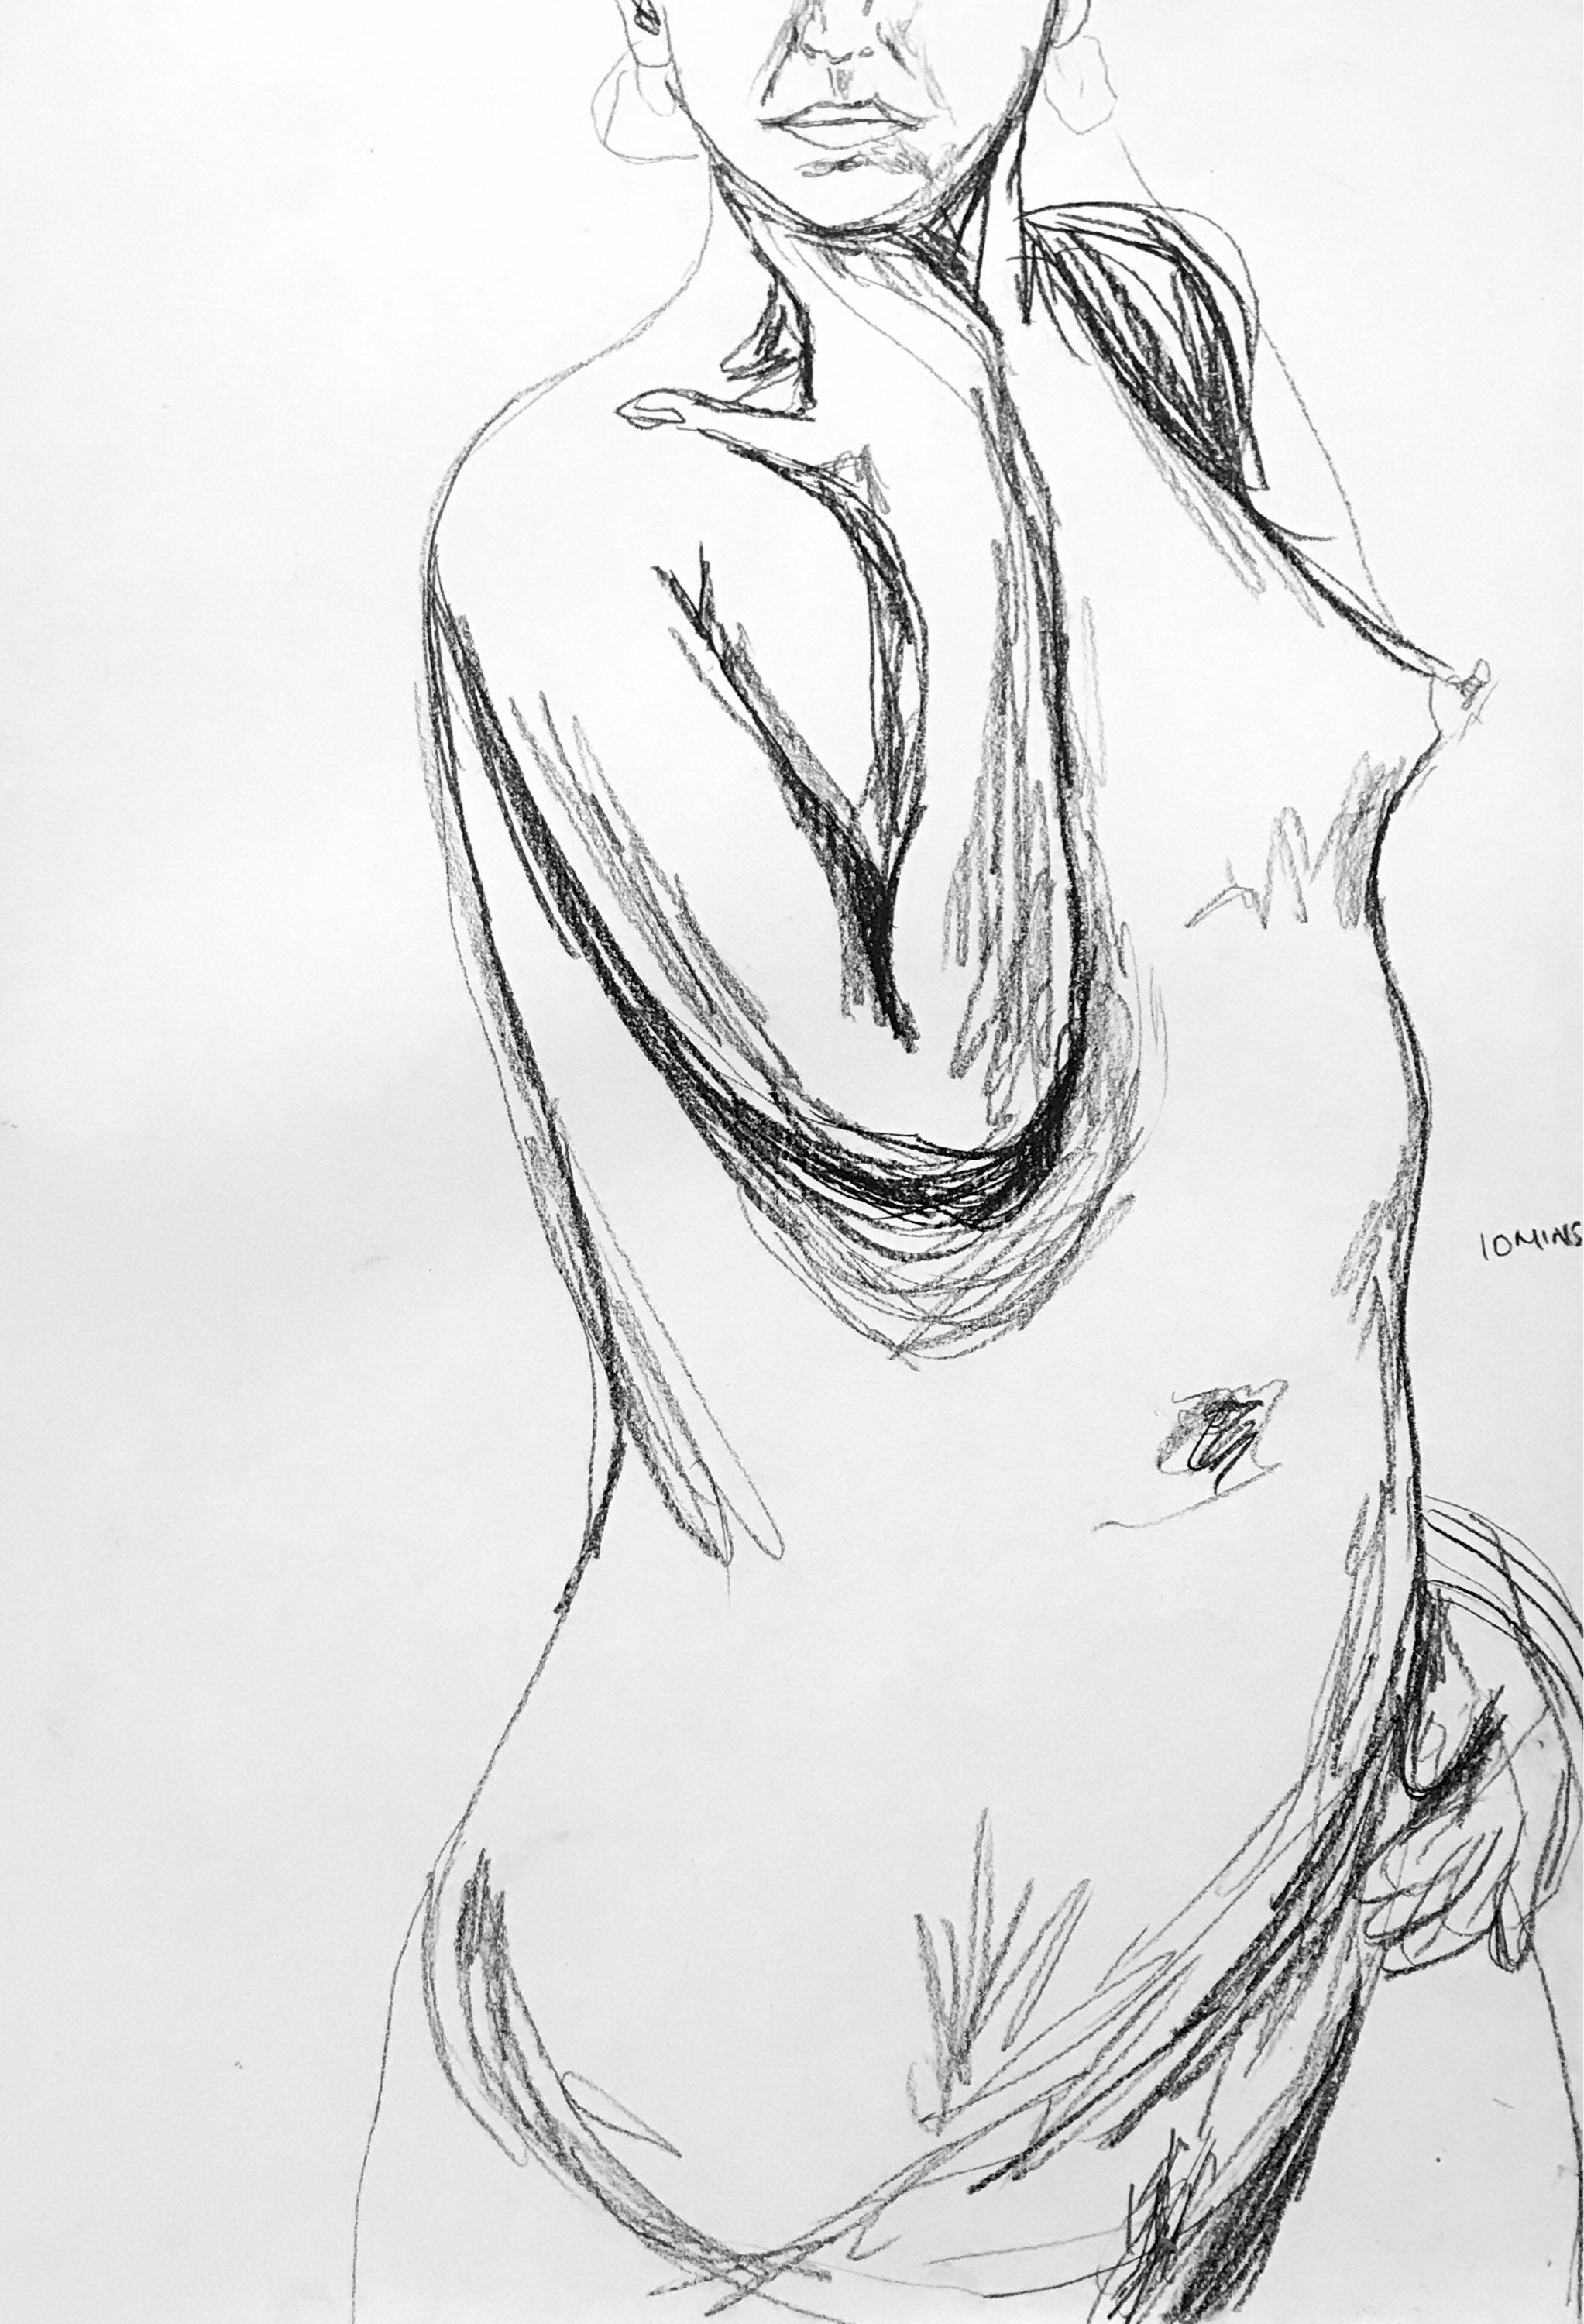 Nude sketch of female figure in black and white charcoal nude artwork for feminine bedroom decor original line drawing of woman nude